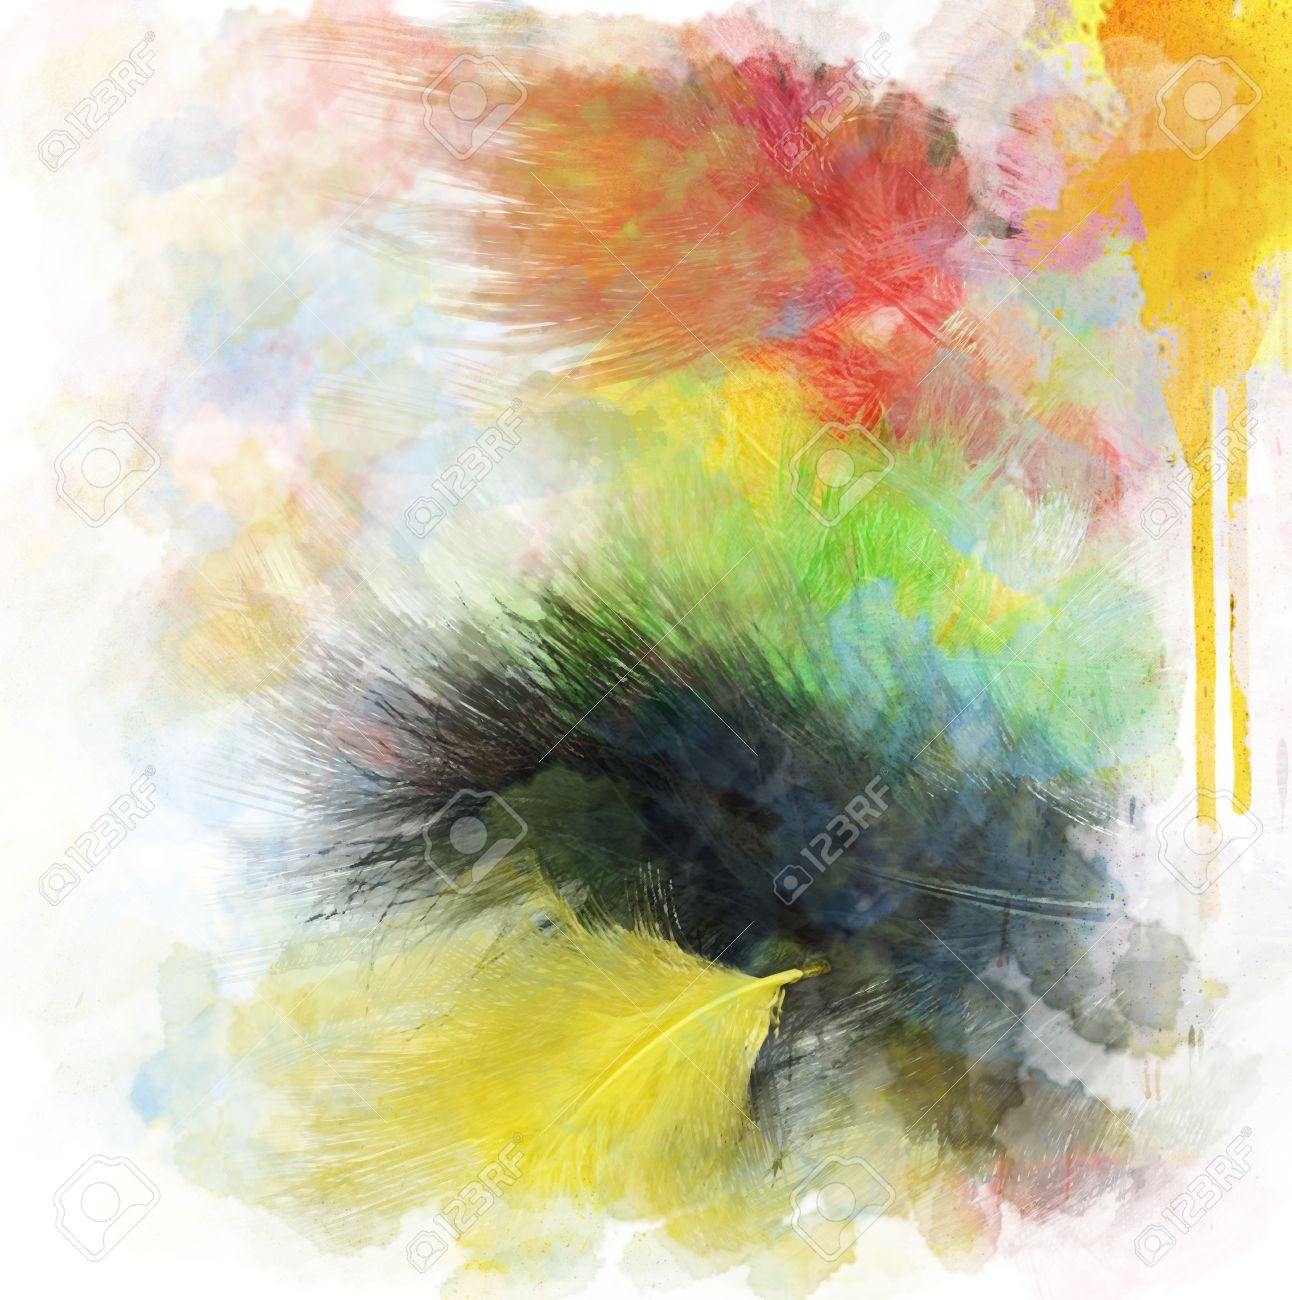 watercolor digital painting of feathers background stock photo